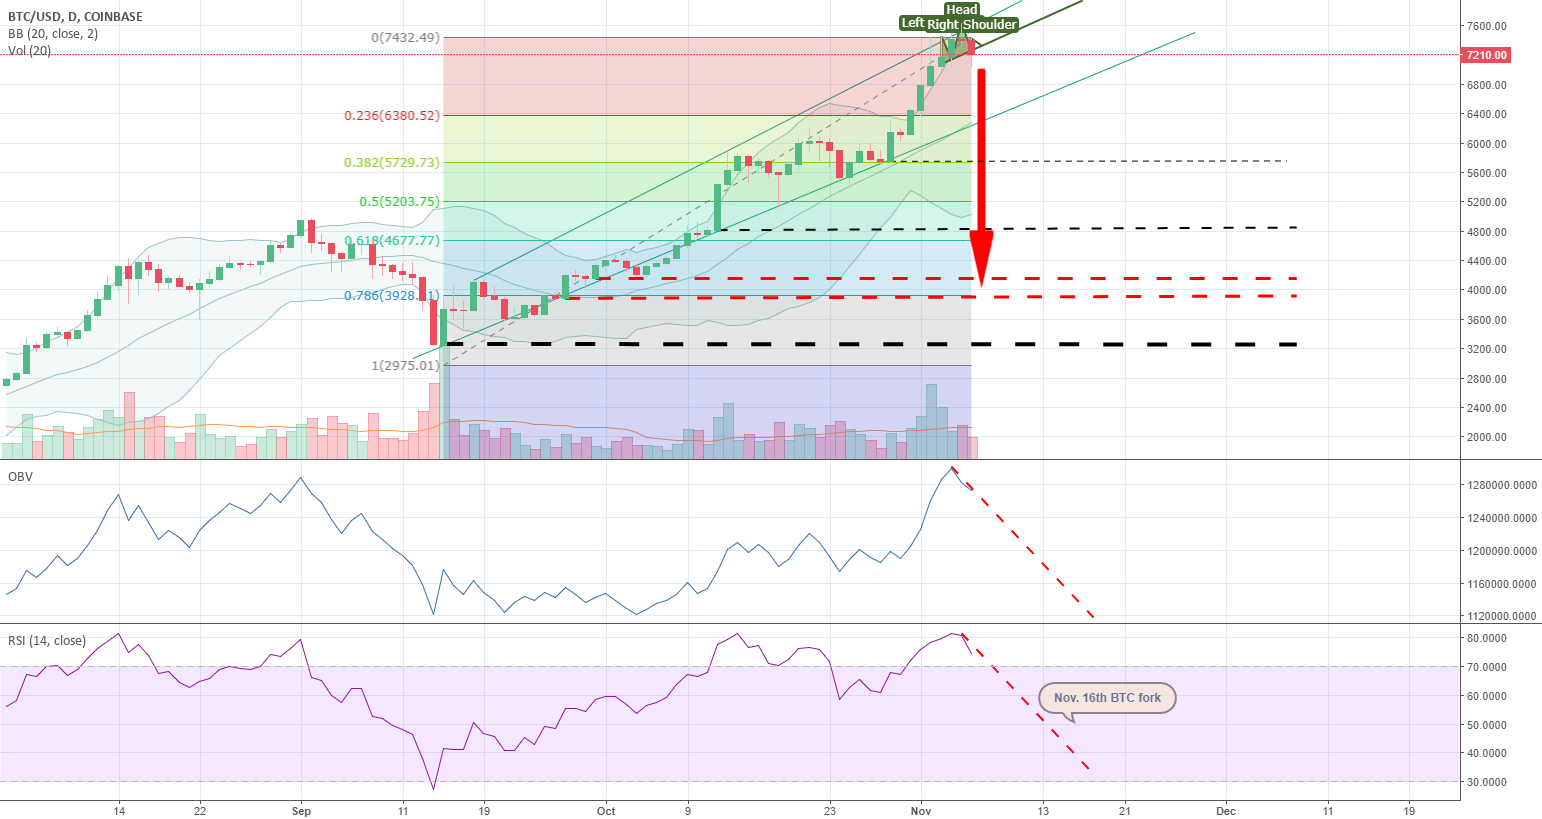 BTC/USD (Possible H&S) Correction Targets